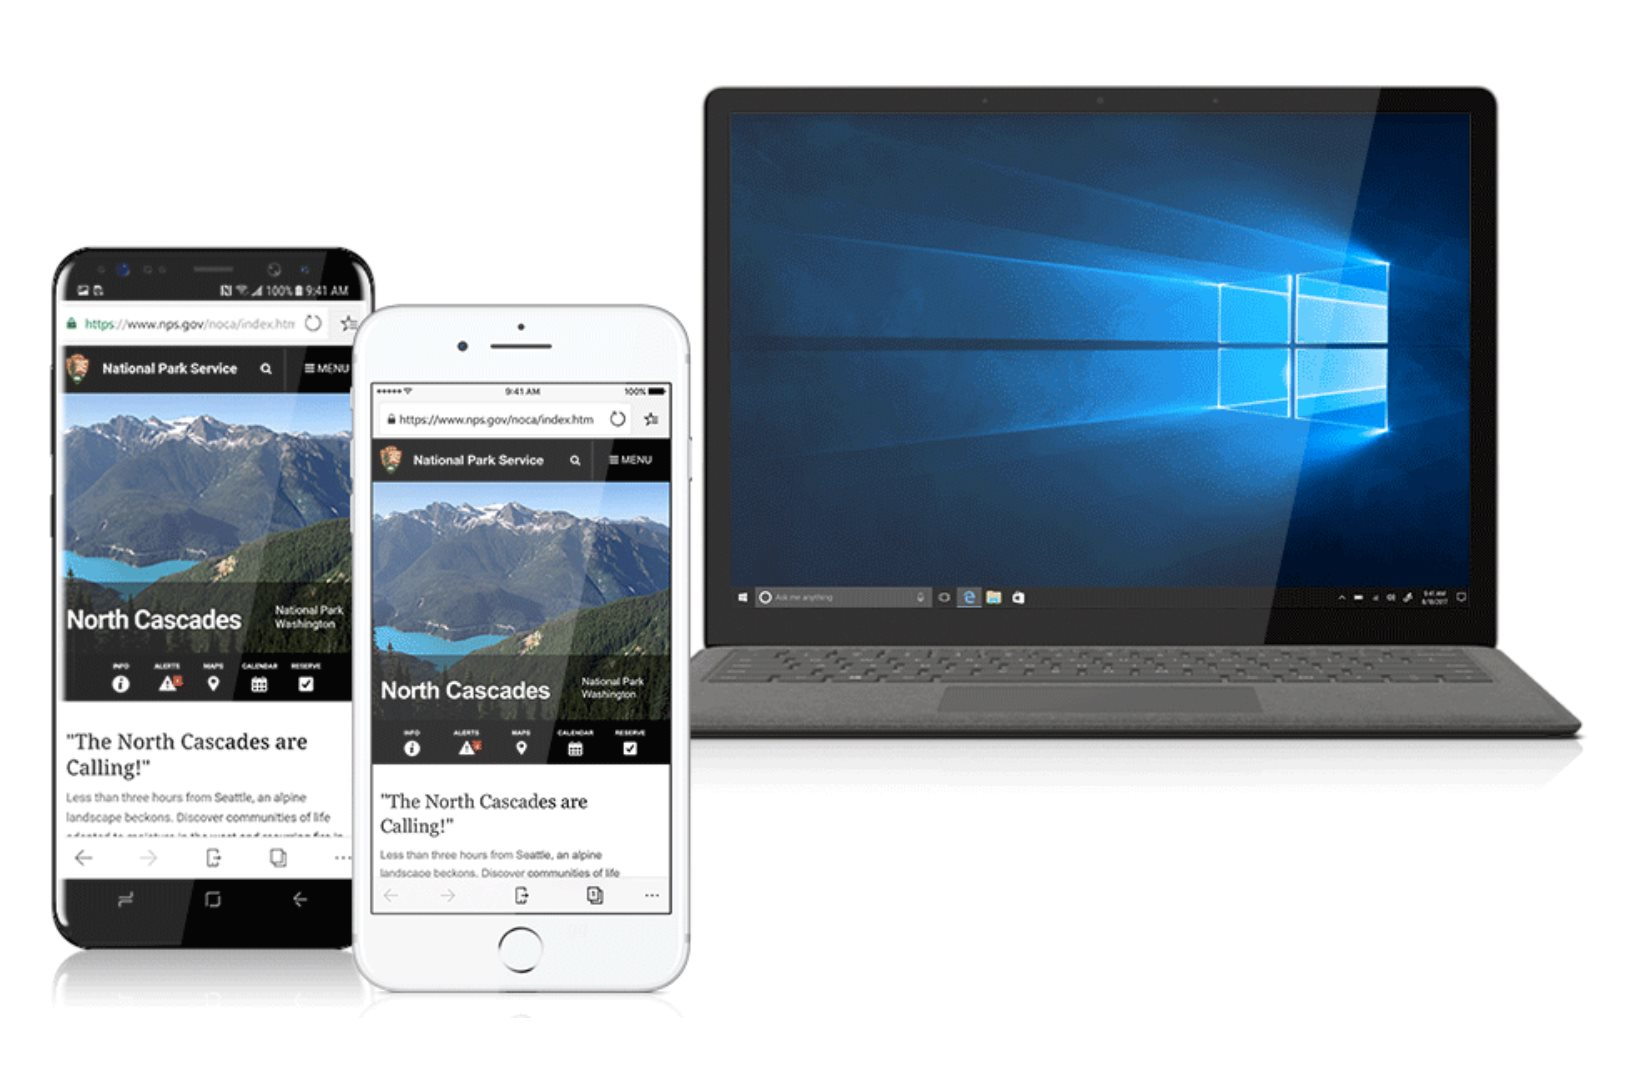 Microsoft's Windows 10 Browser Now Available for All iPhone